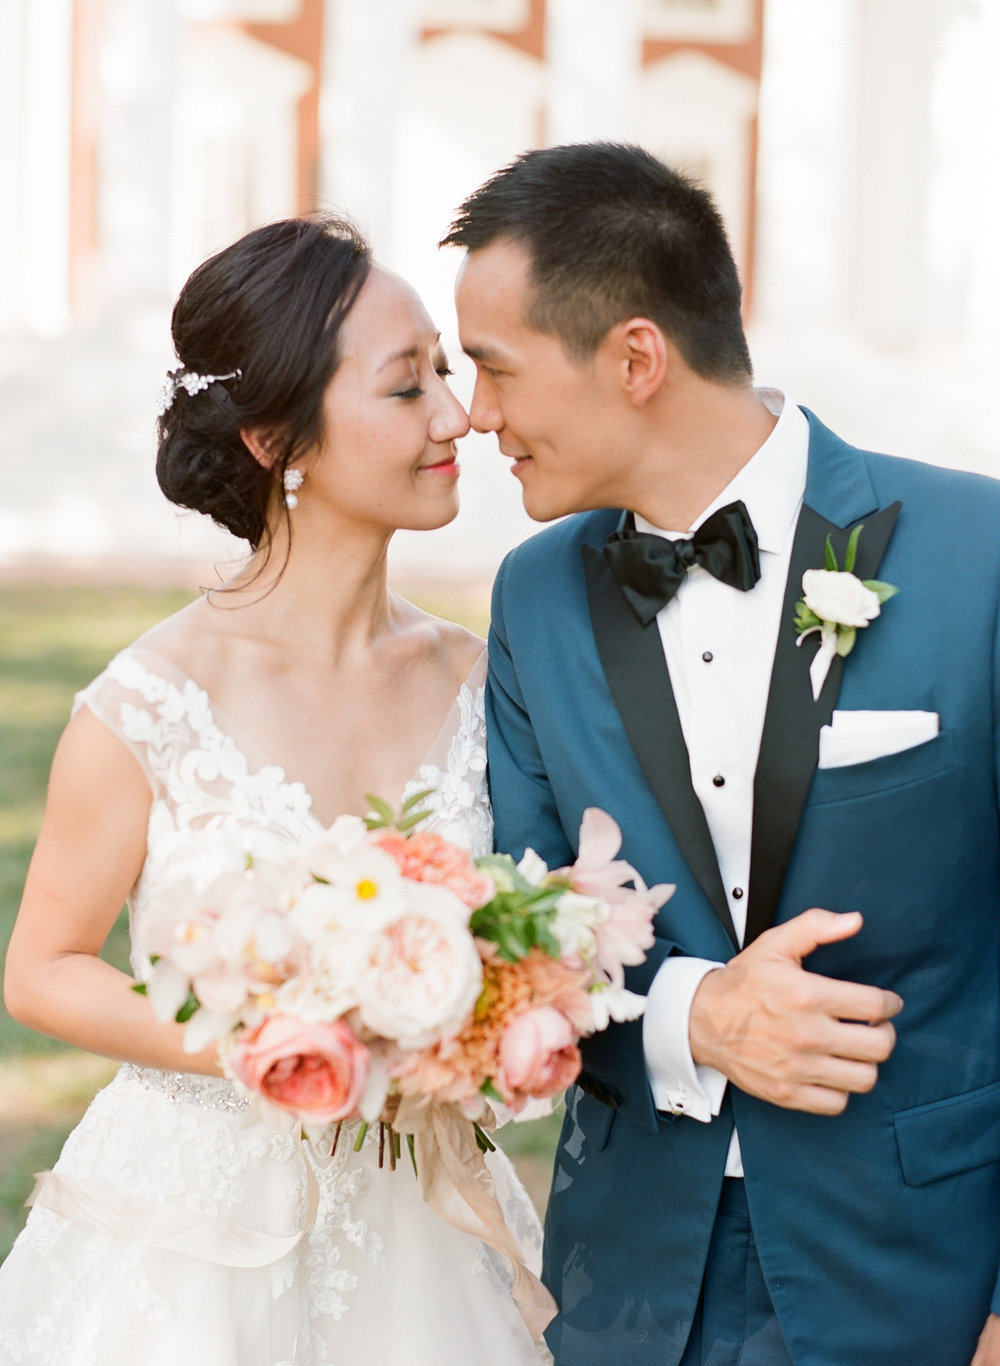 Wanxin_Paul_Wedding(32of54).jpg